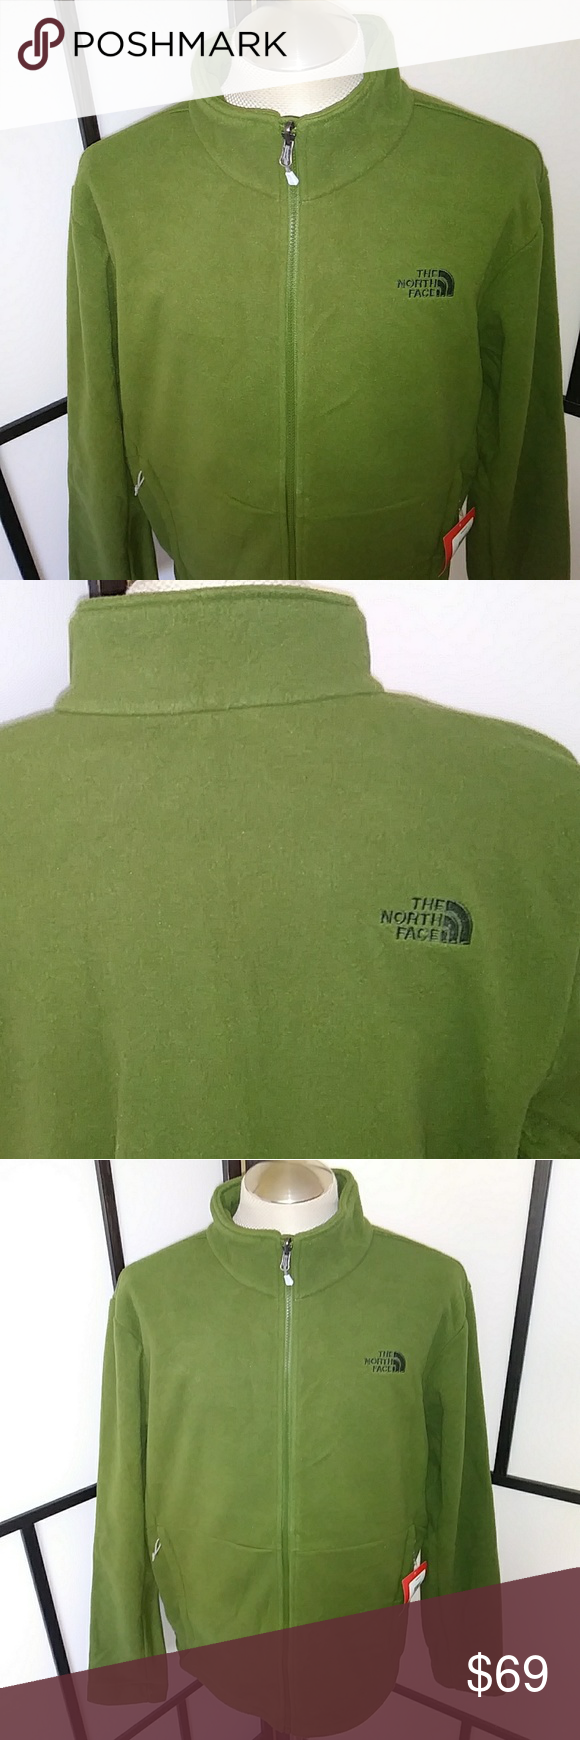 Mens The NorthFace Jacket XL Green New Northface Mens